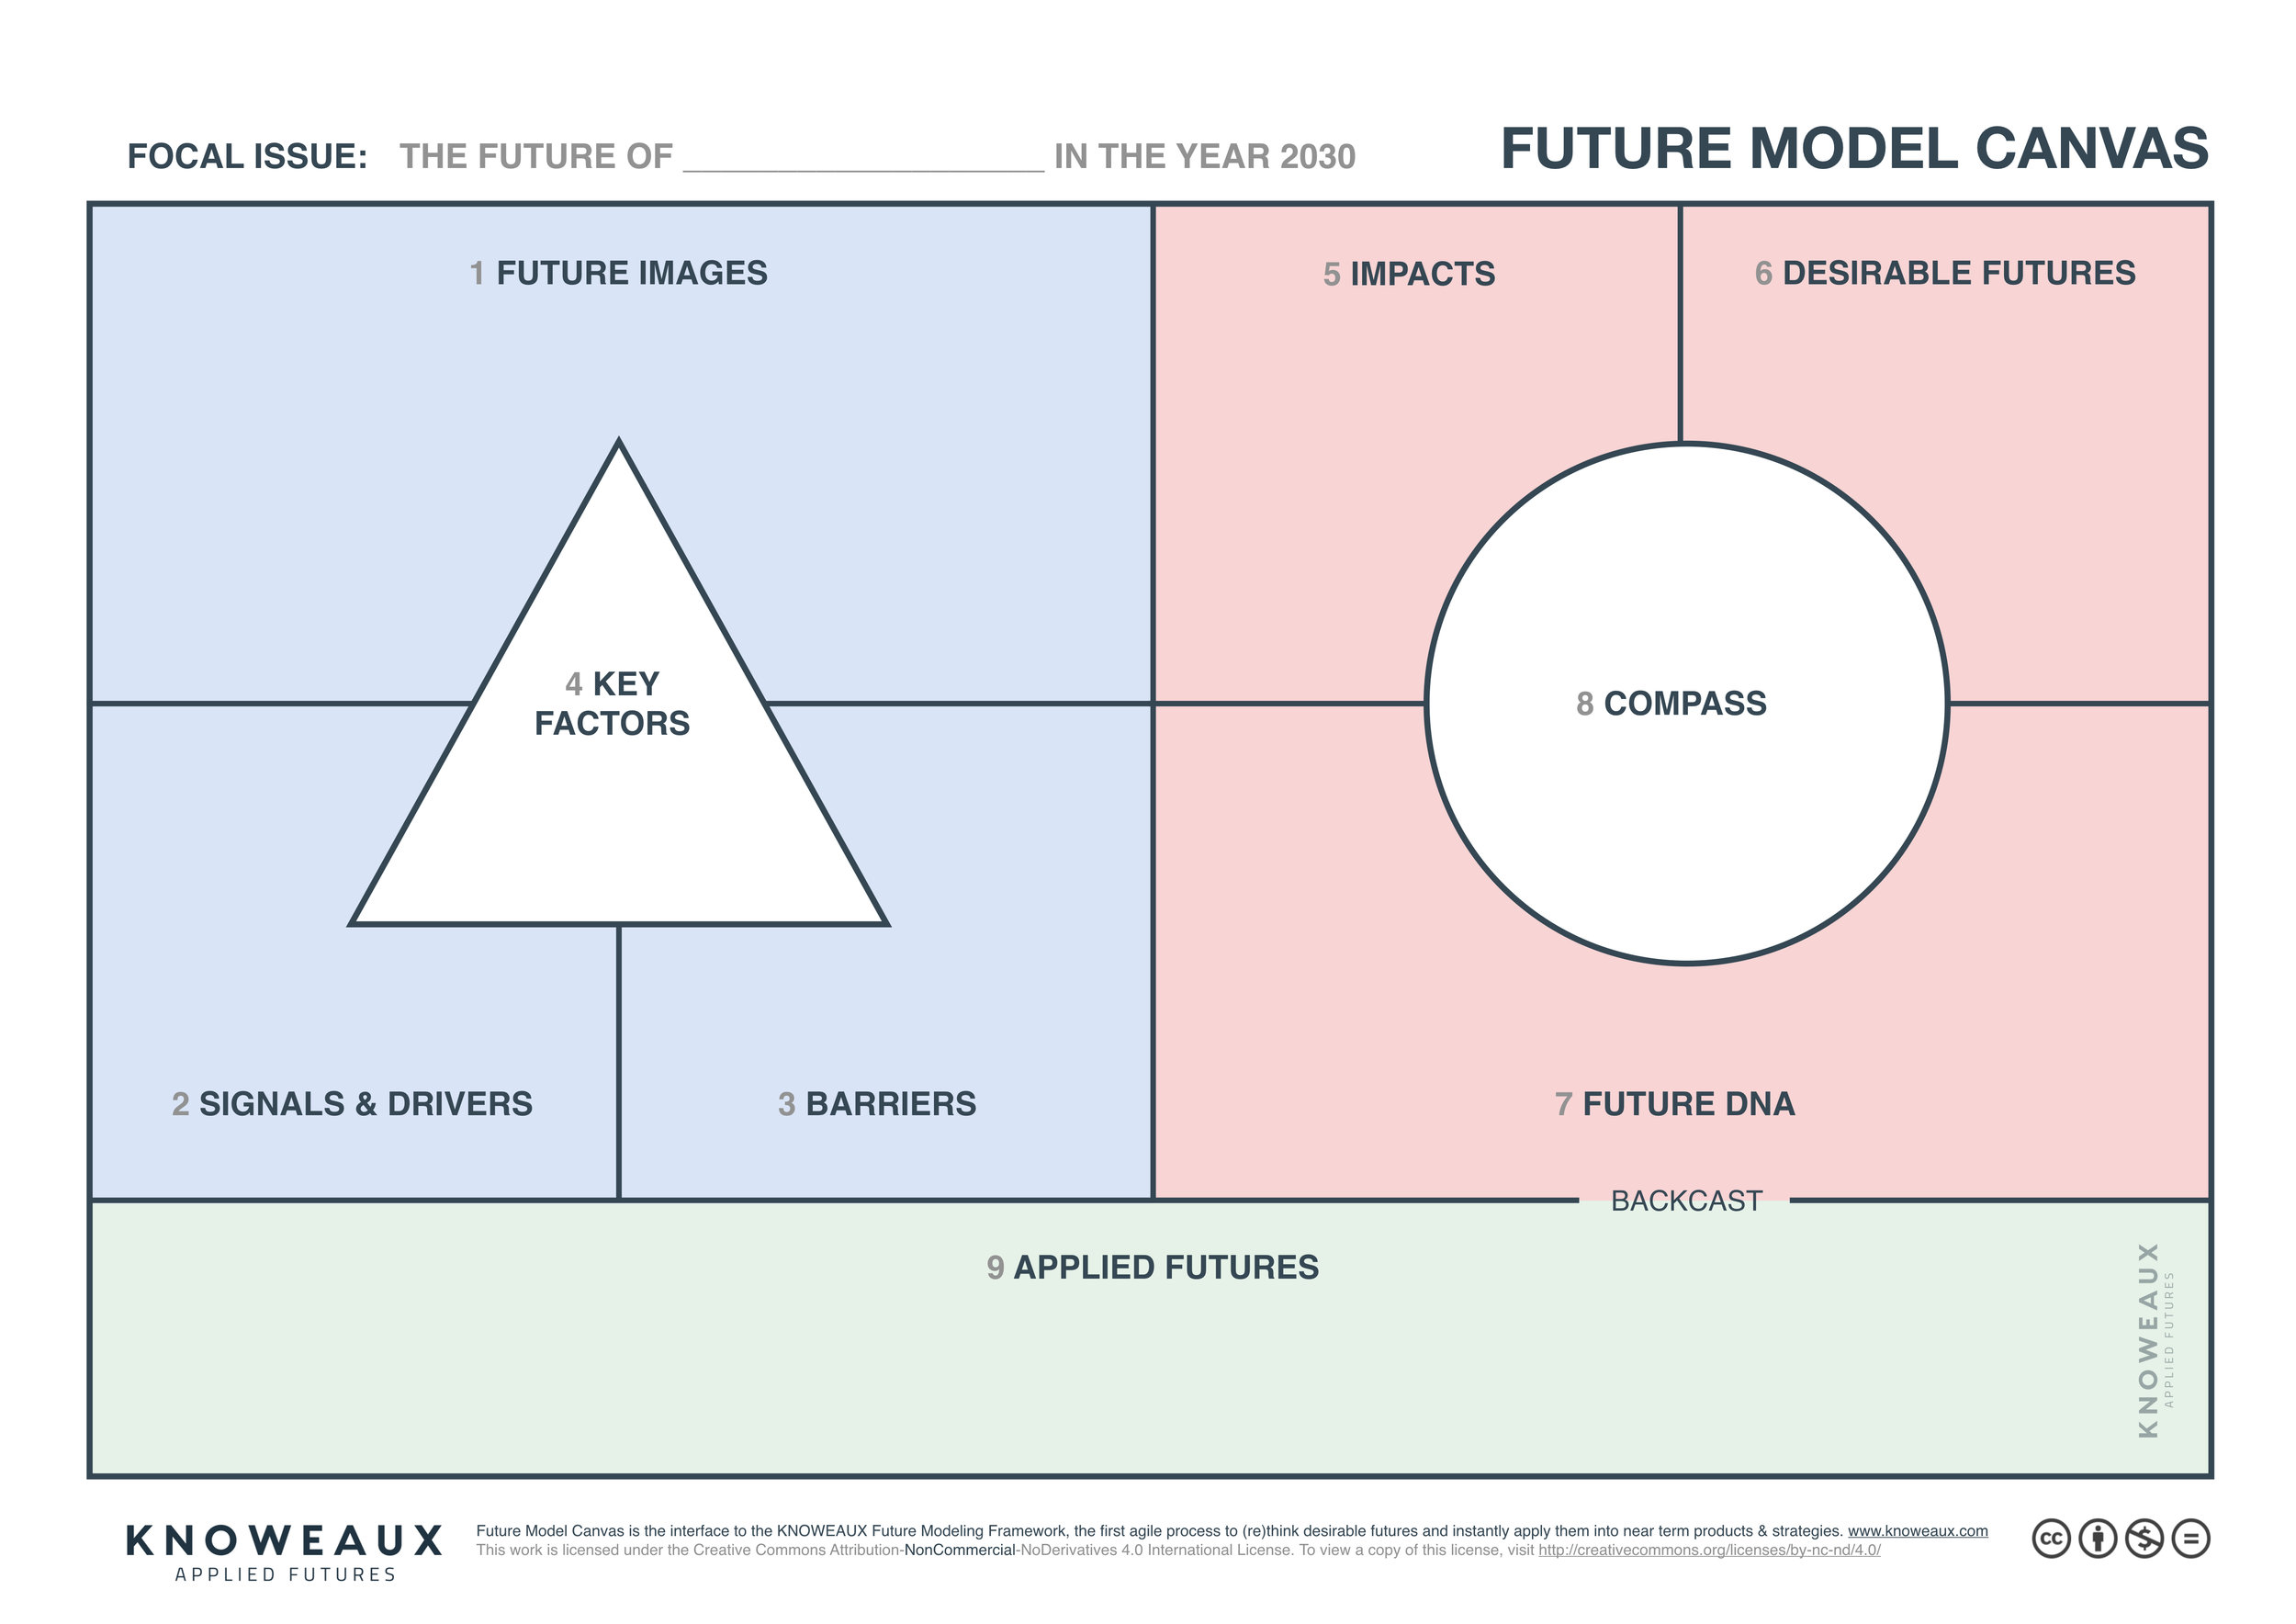 FutureModelCanvas_A3_V.2.0_181115.001.jpeg